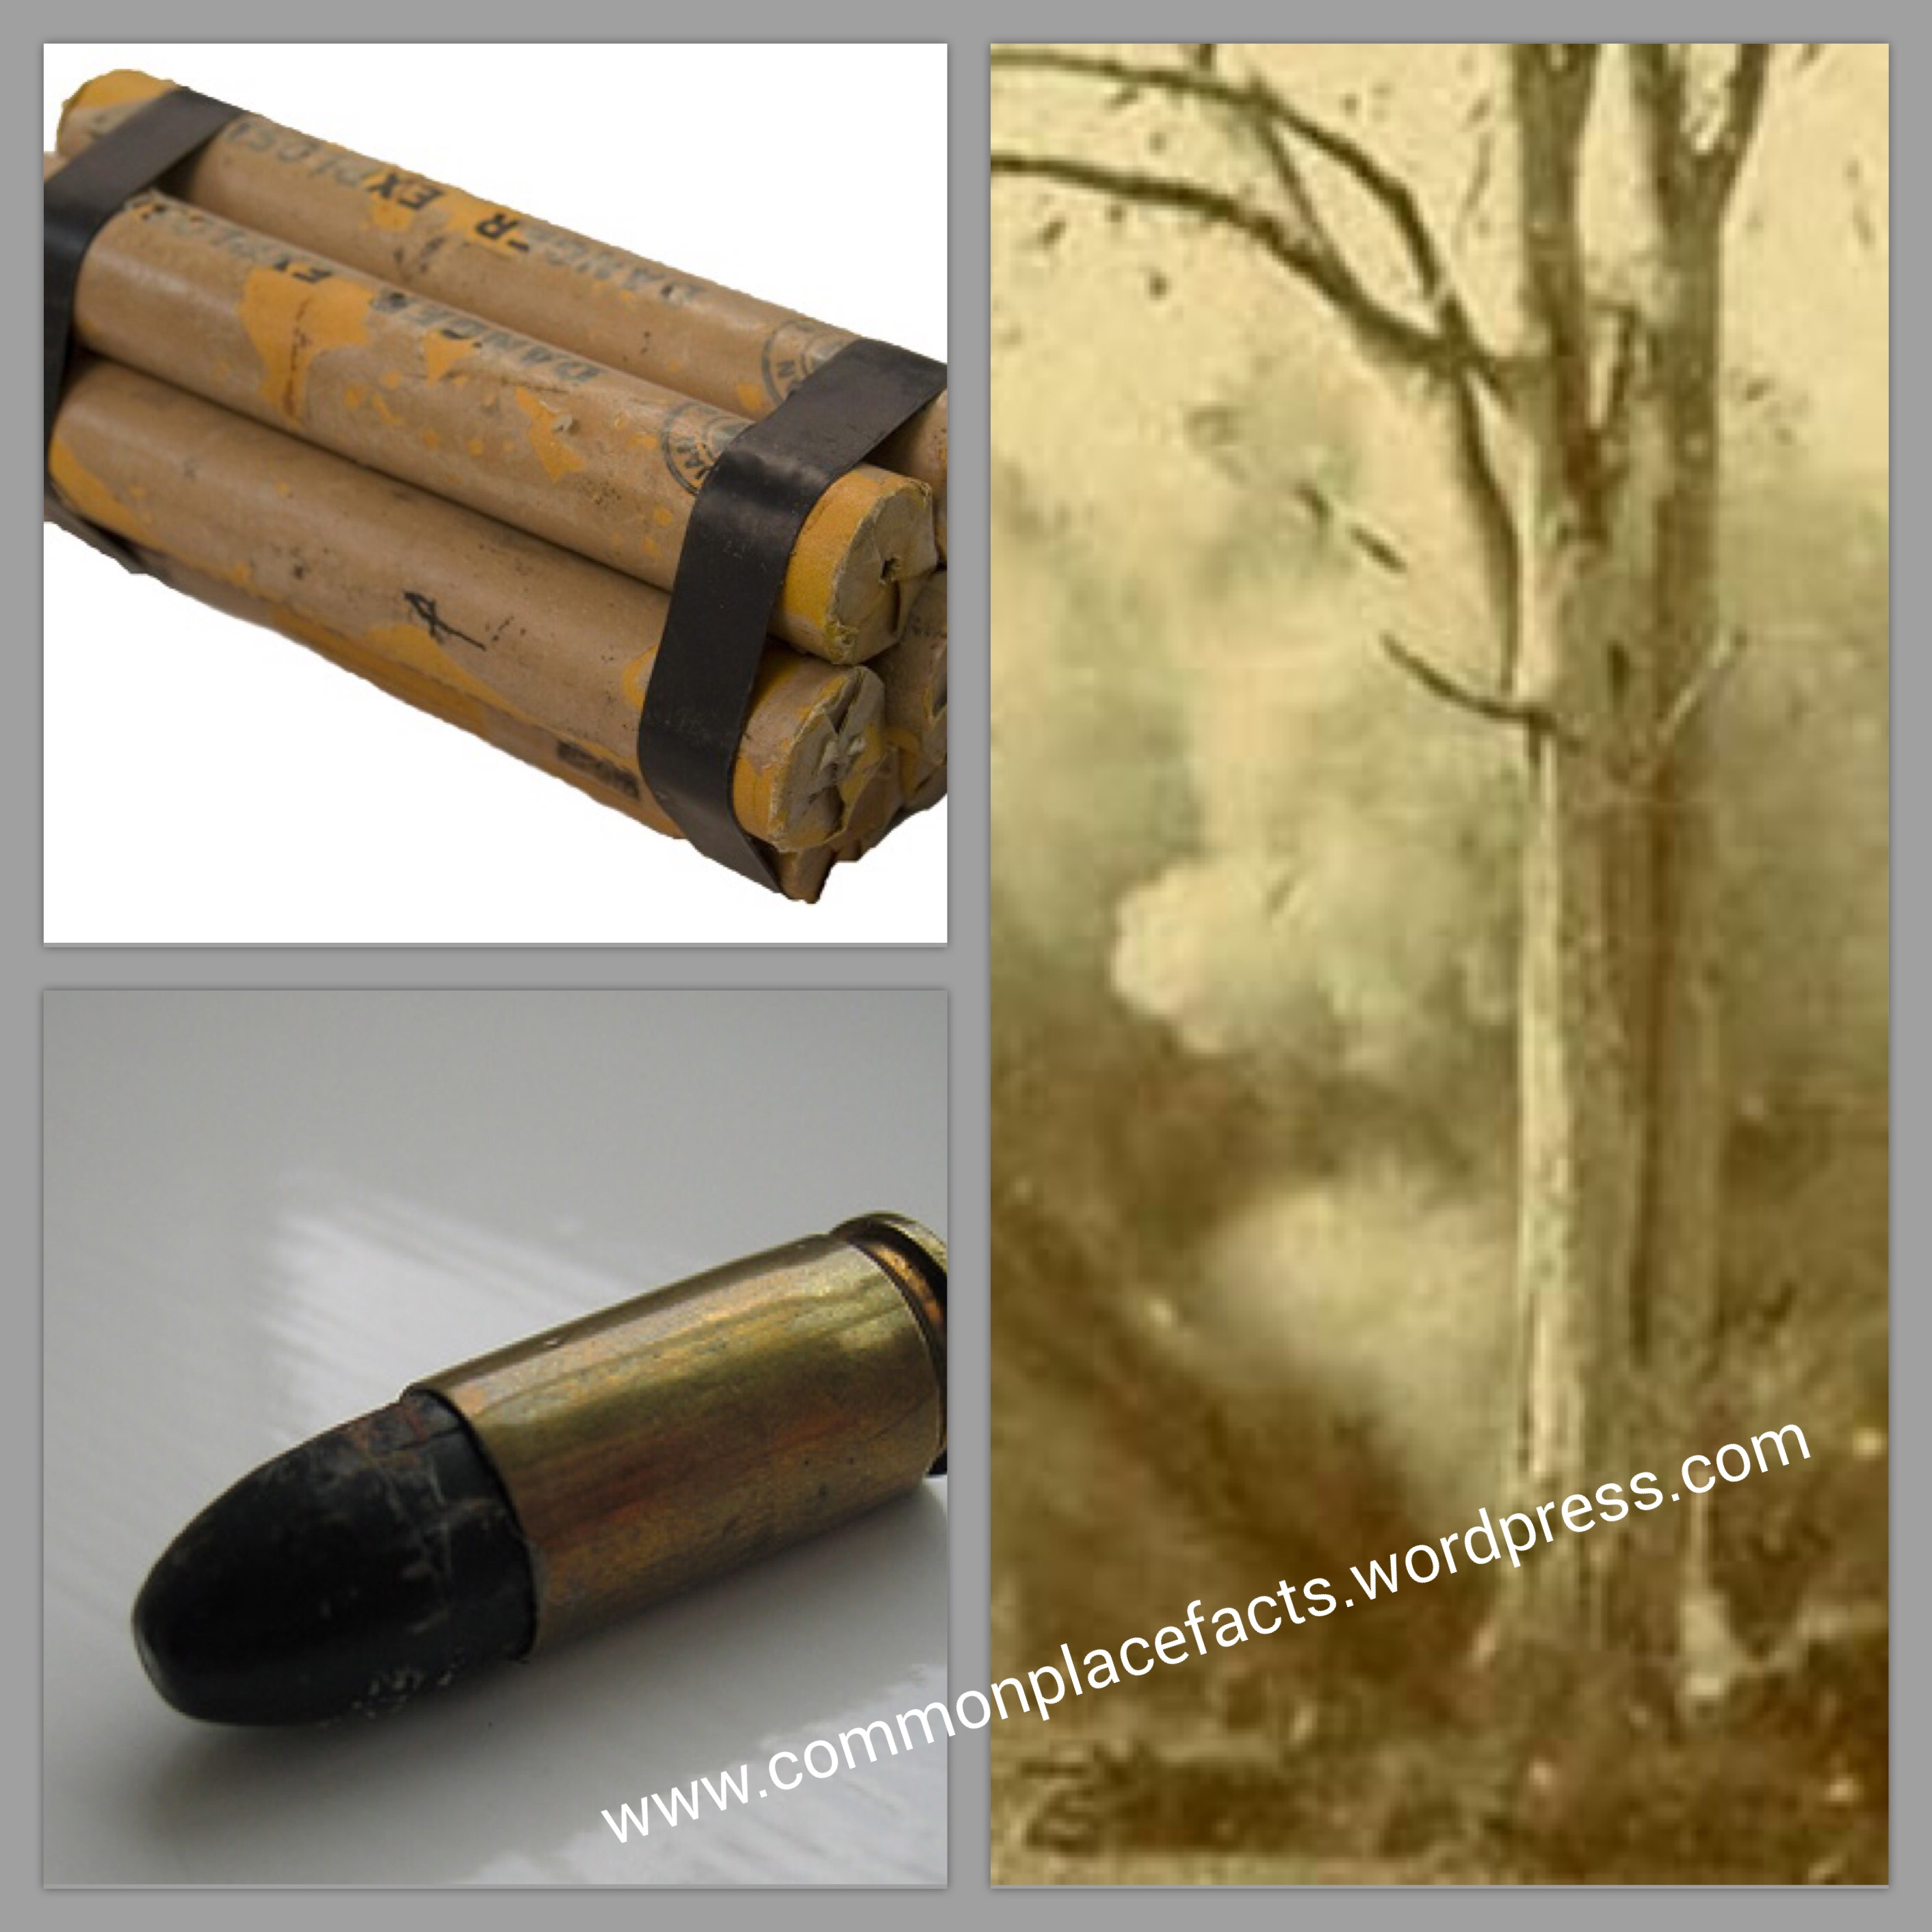 ziegland exploding tree bullet coincidence